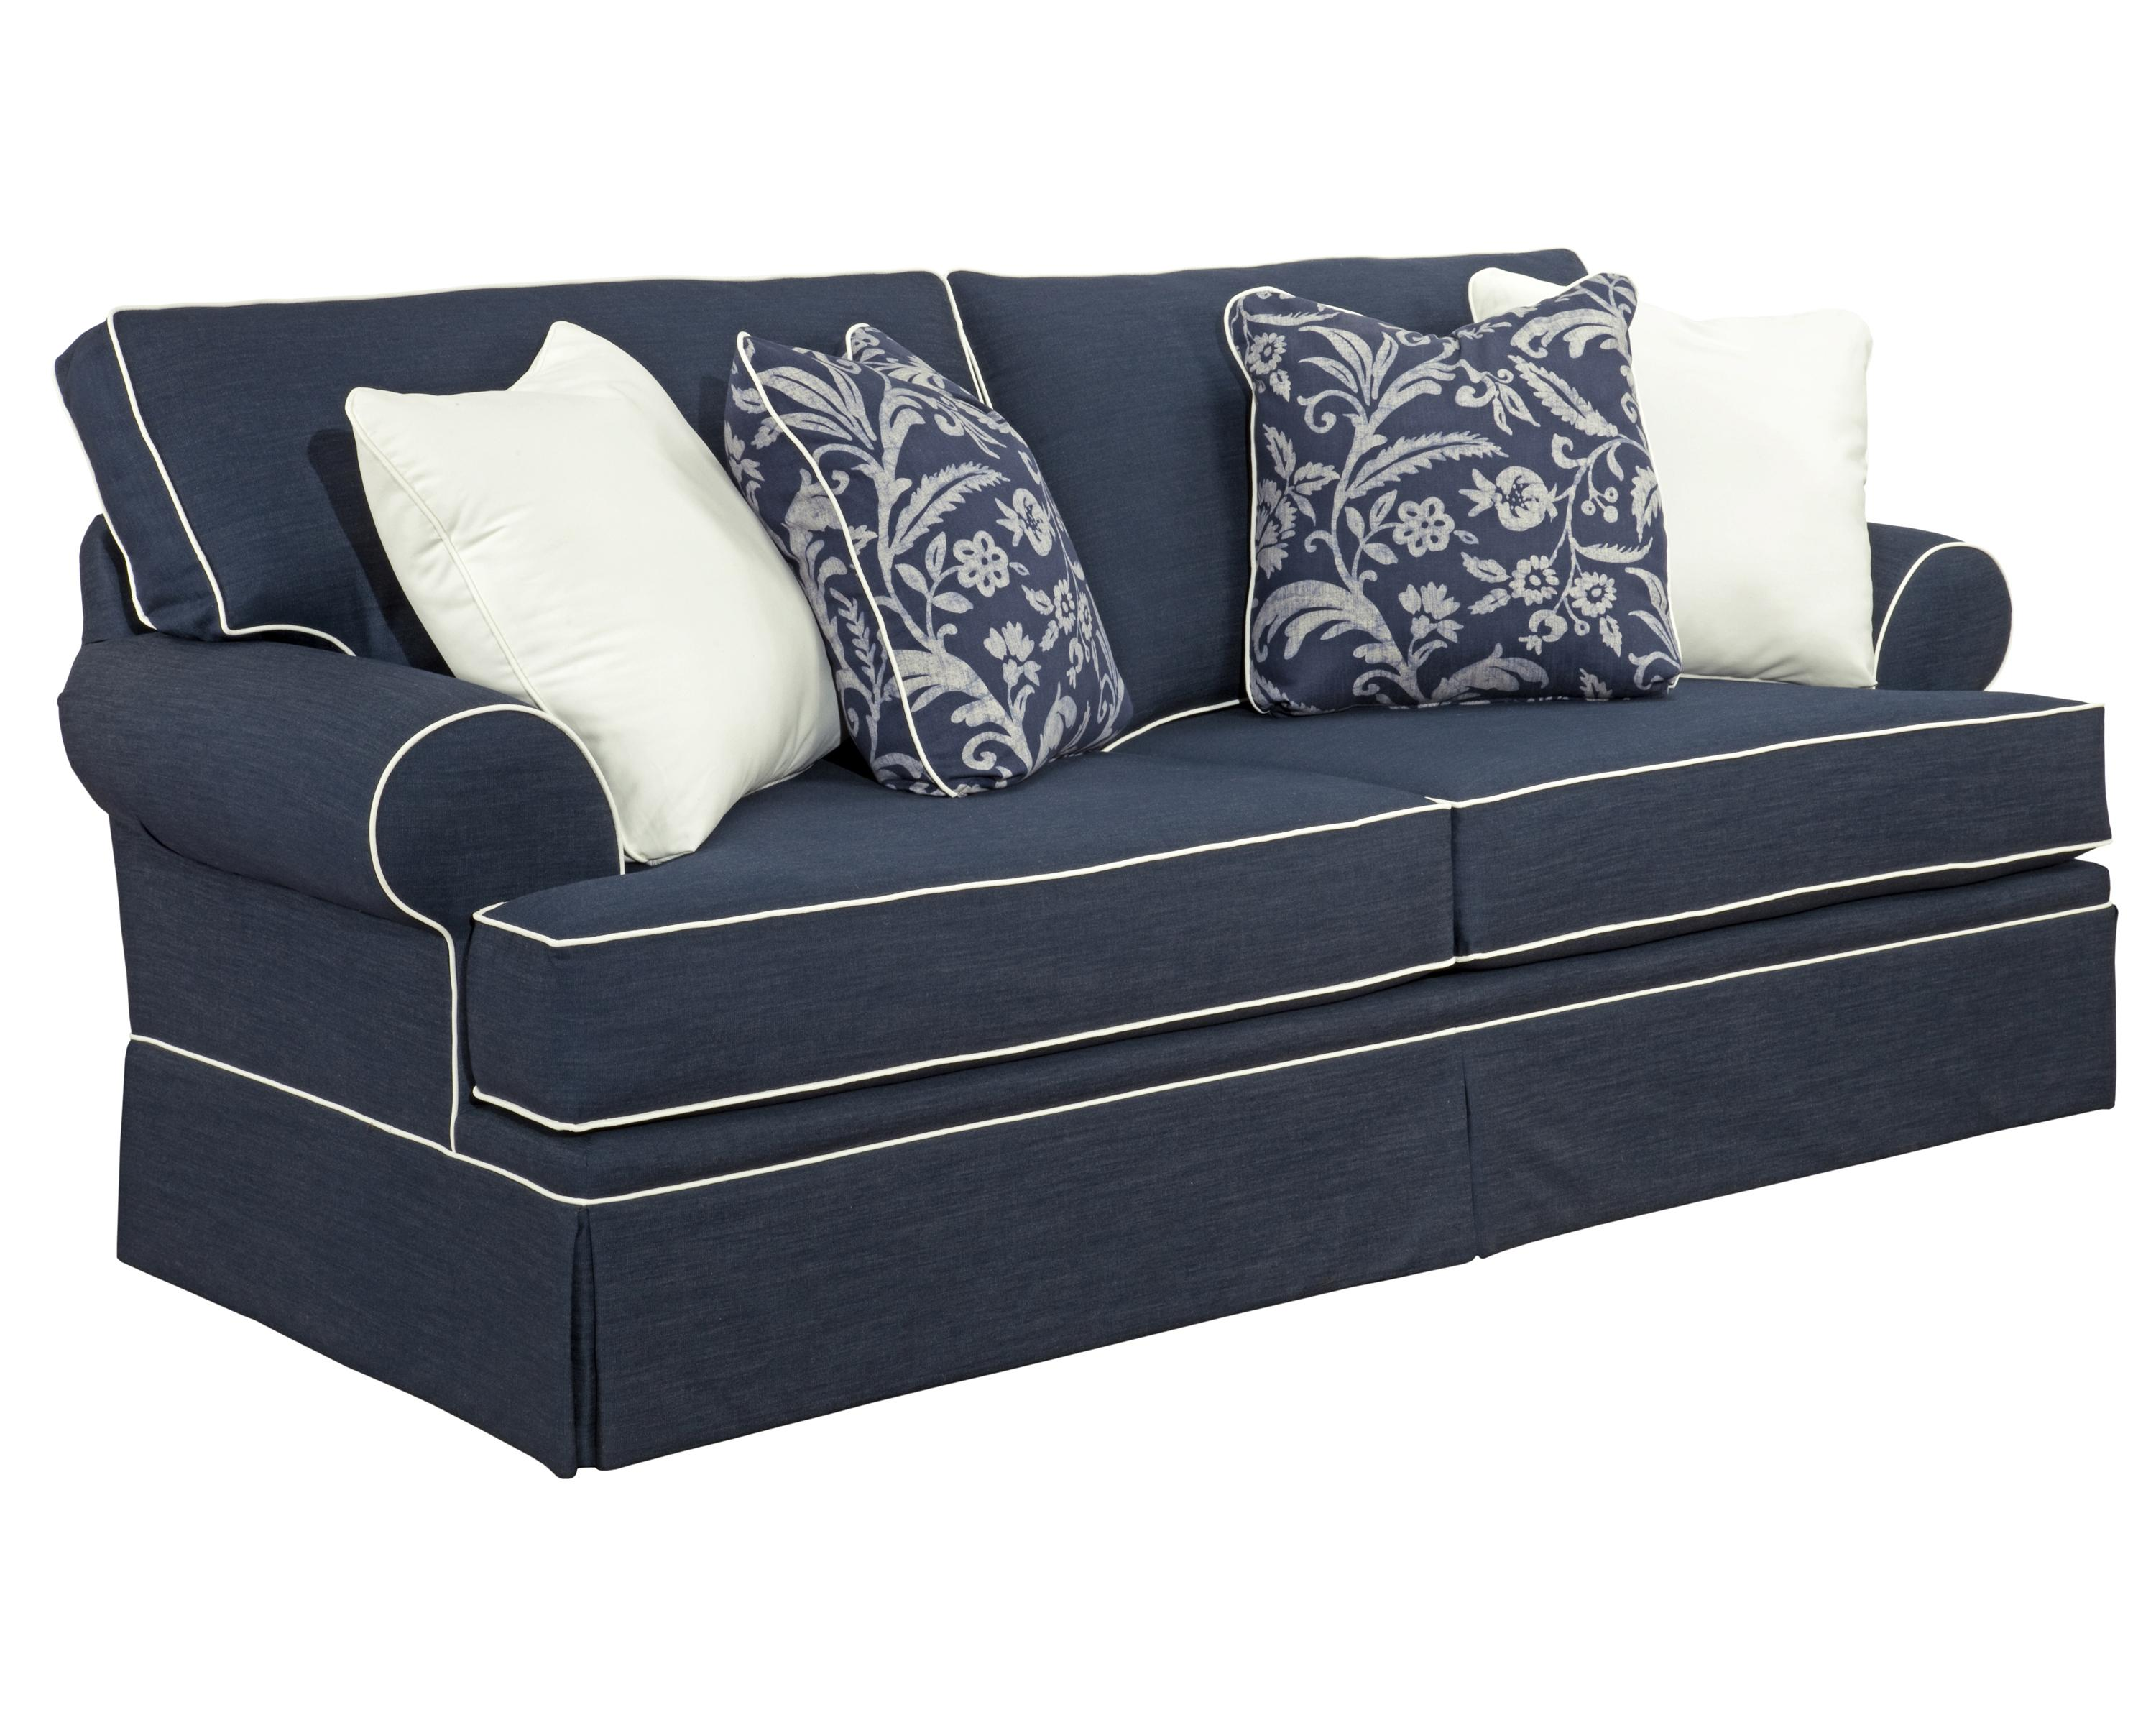 Broyhill Furniture Emily Queen IREST Sleeper  - Item Number: 6262-7M